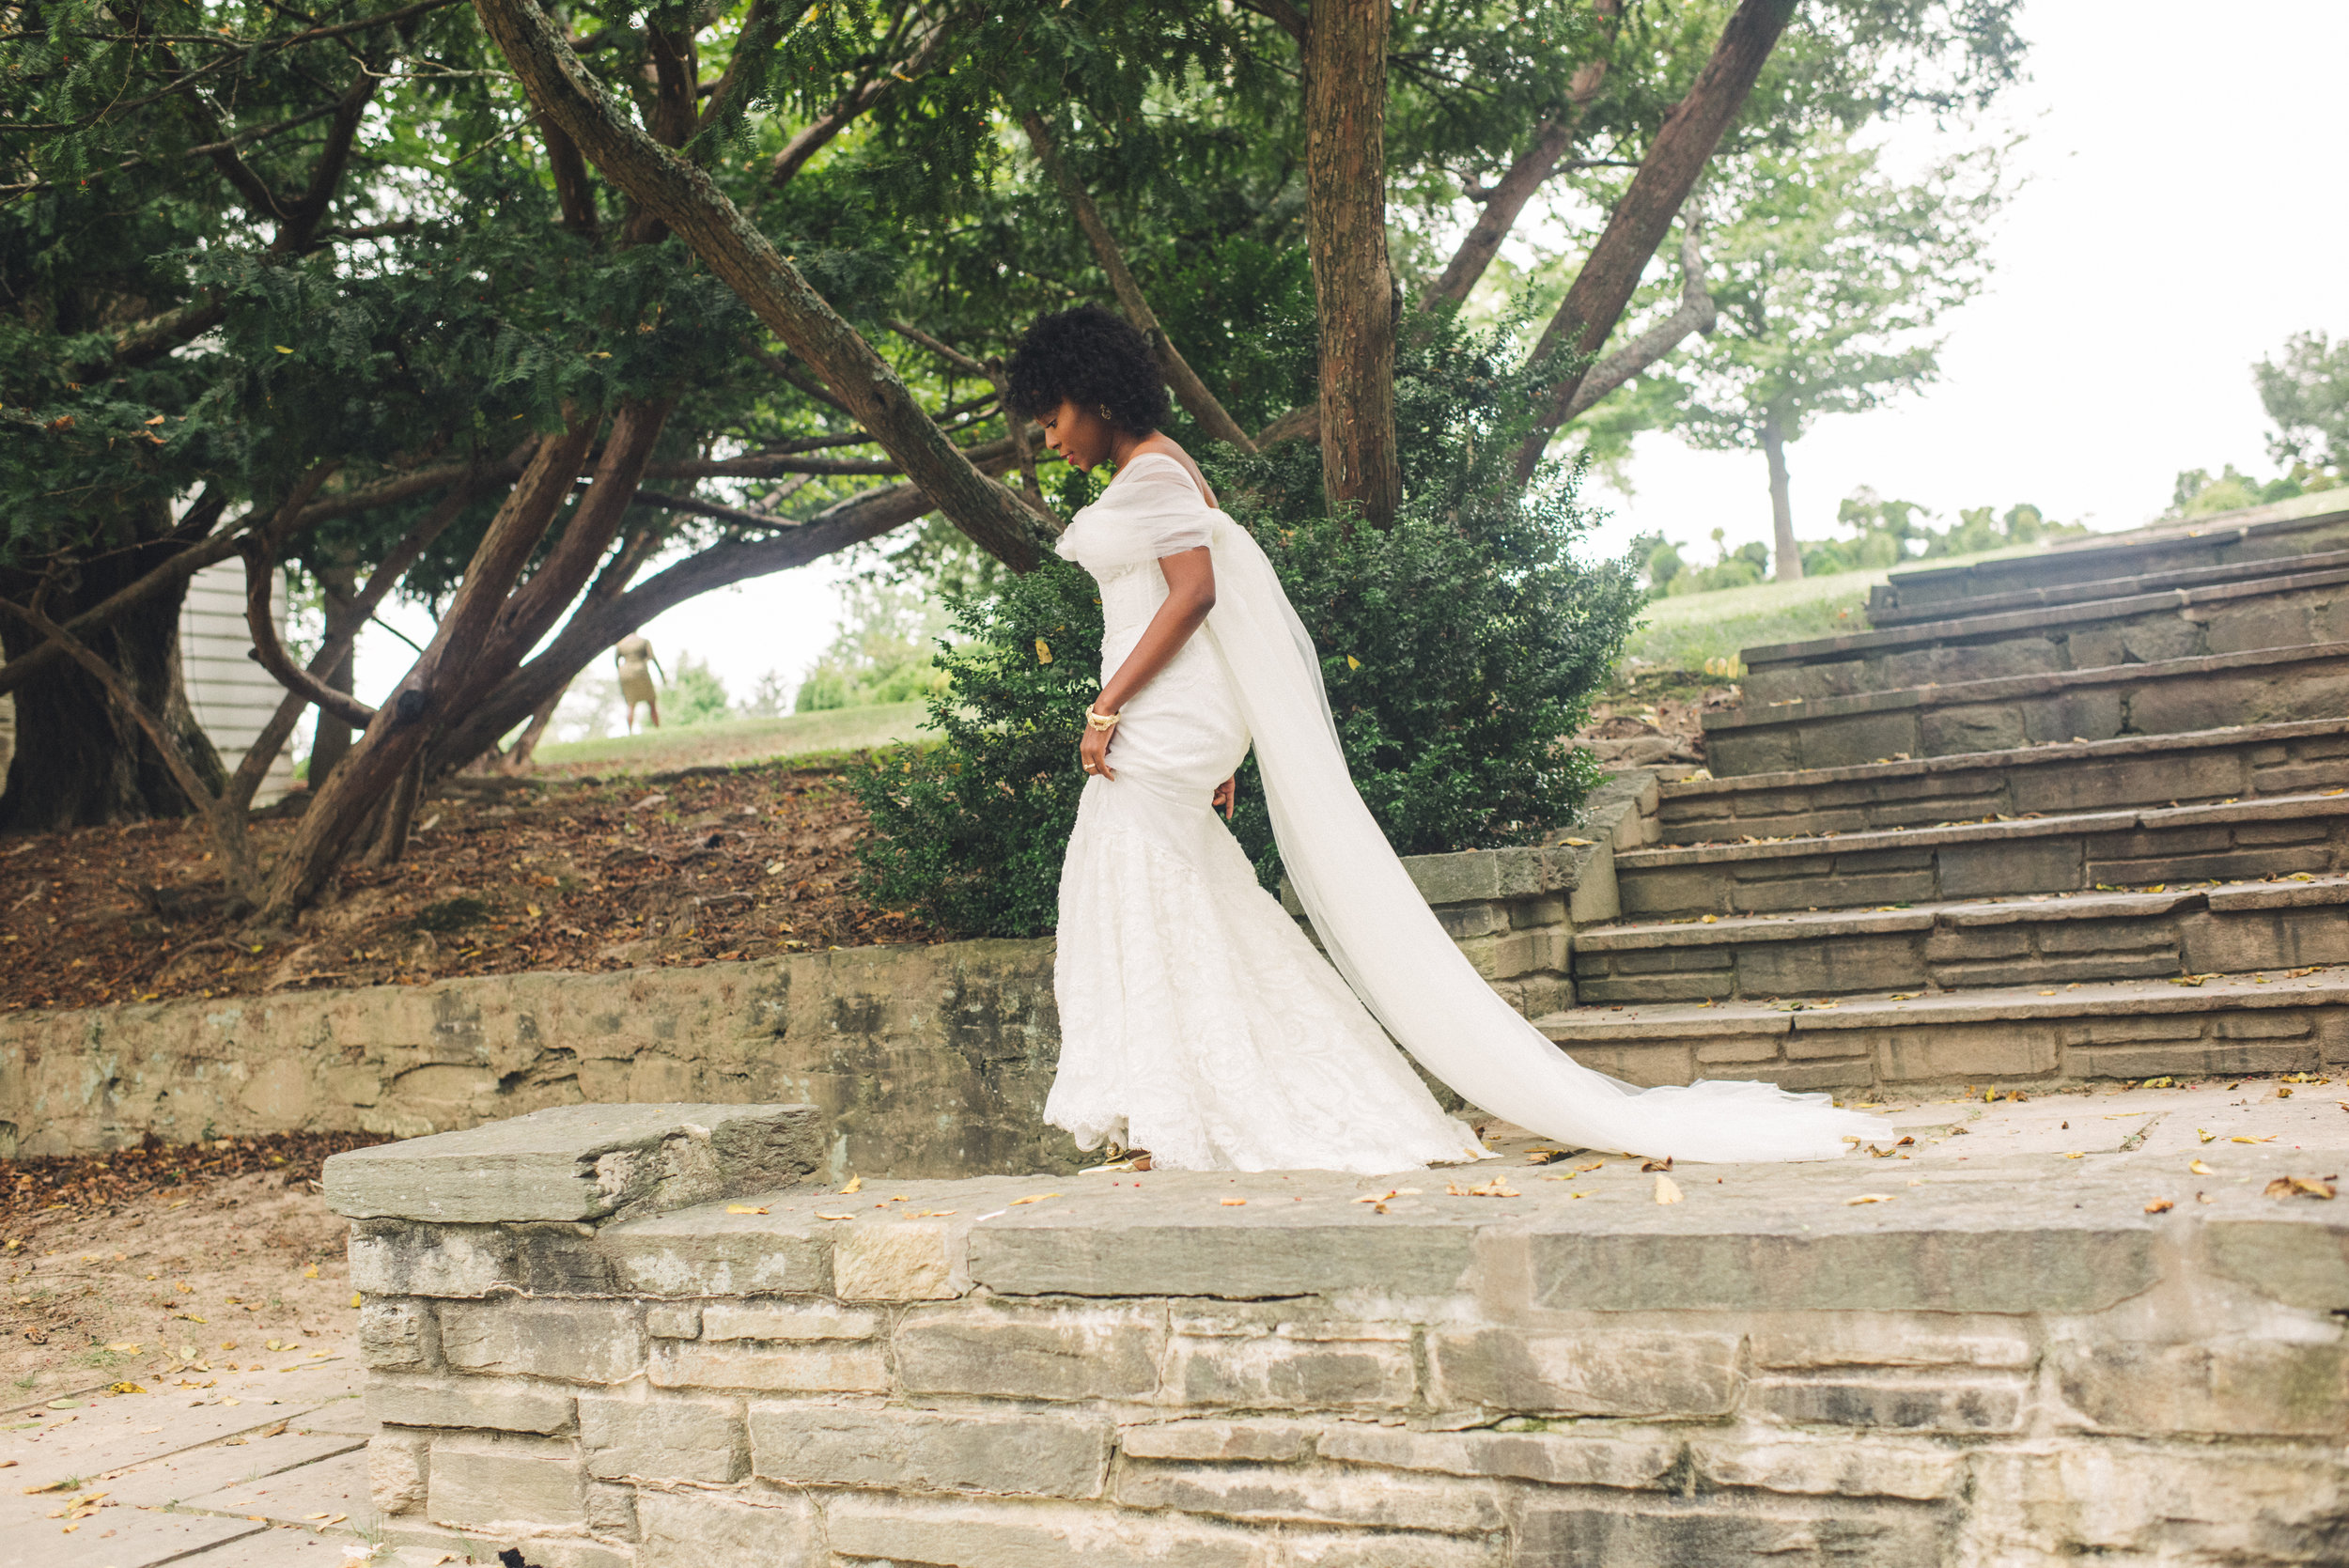 GLENVIEW MANSION WEDDING - INTIMATE WEDDING PHOTOGRAPHER - TWOTWENTY by CHI-CHI AGBIM-129.jpg